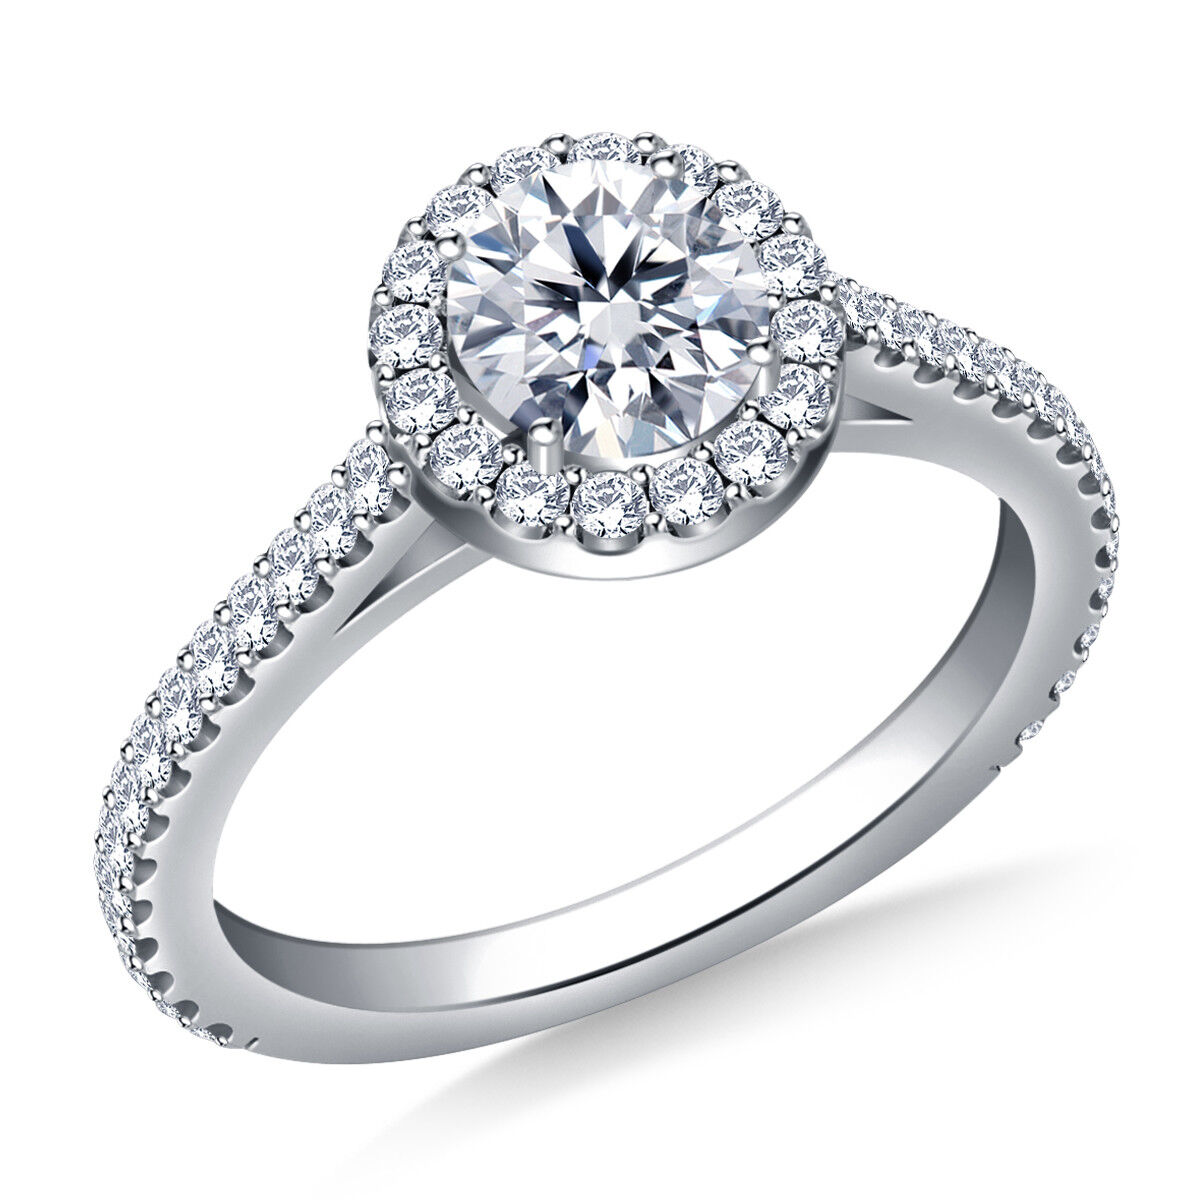 0.98 Ct Round VVS1 Diamond Engagement Ring 14K Solid White gold Size 6, 6.5, 7